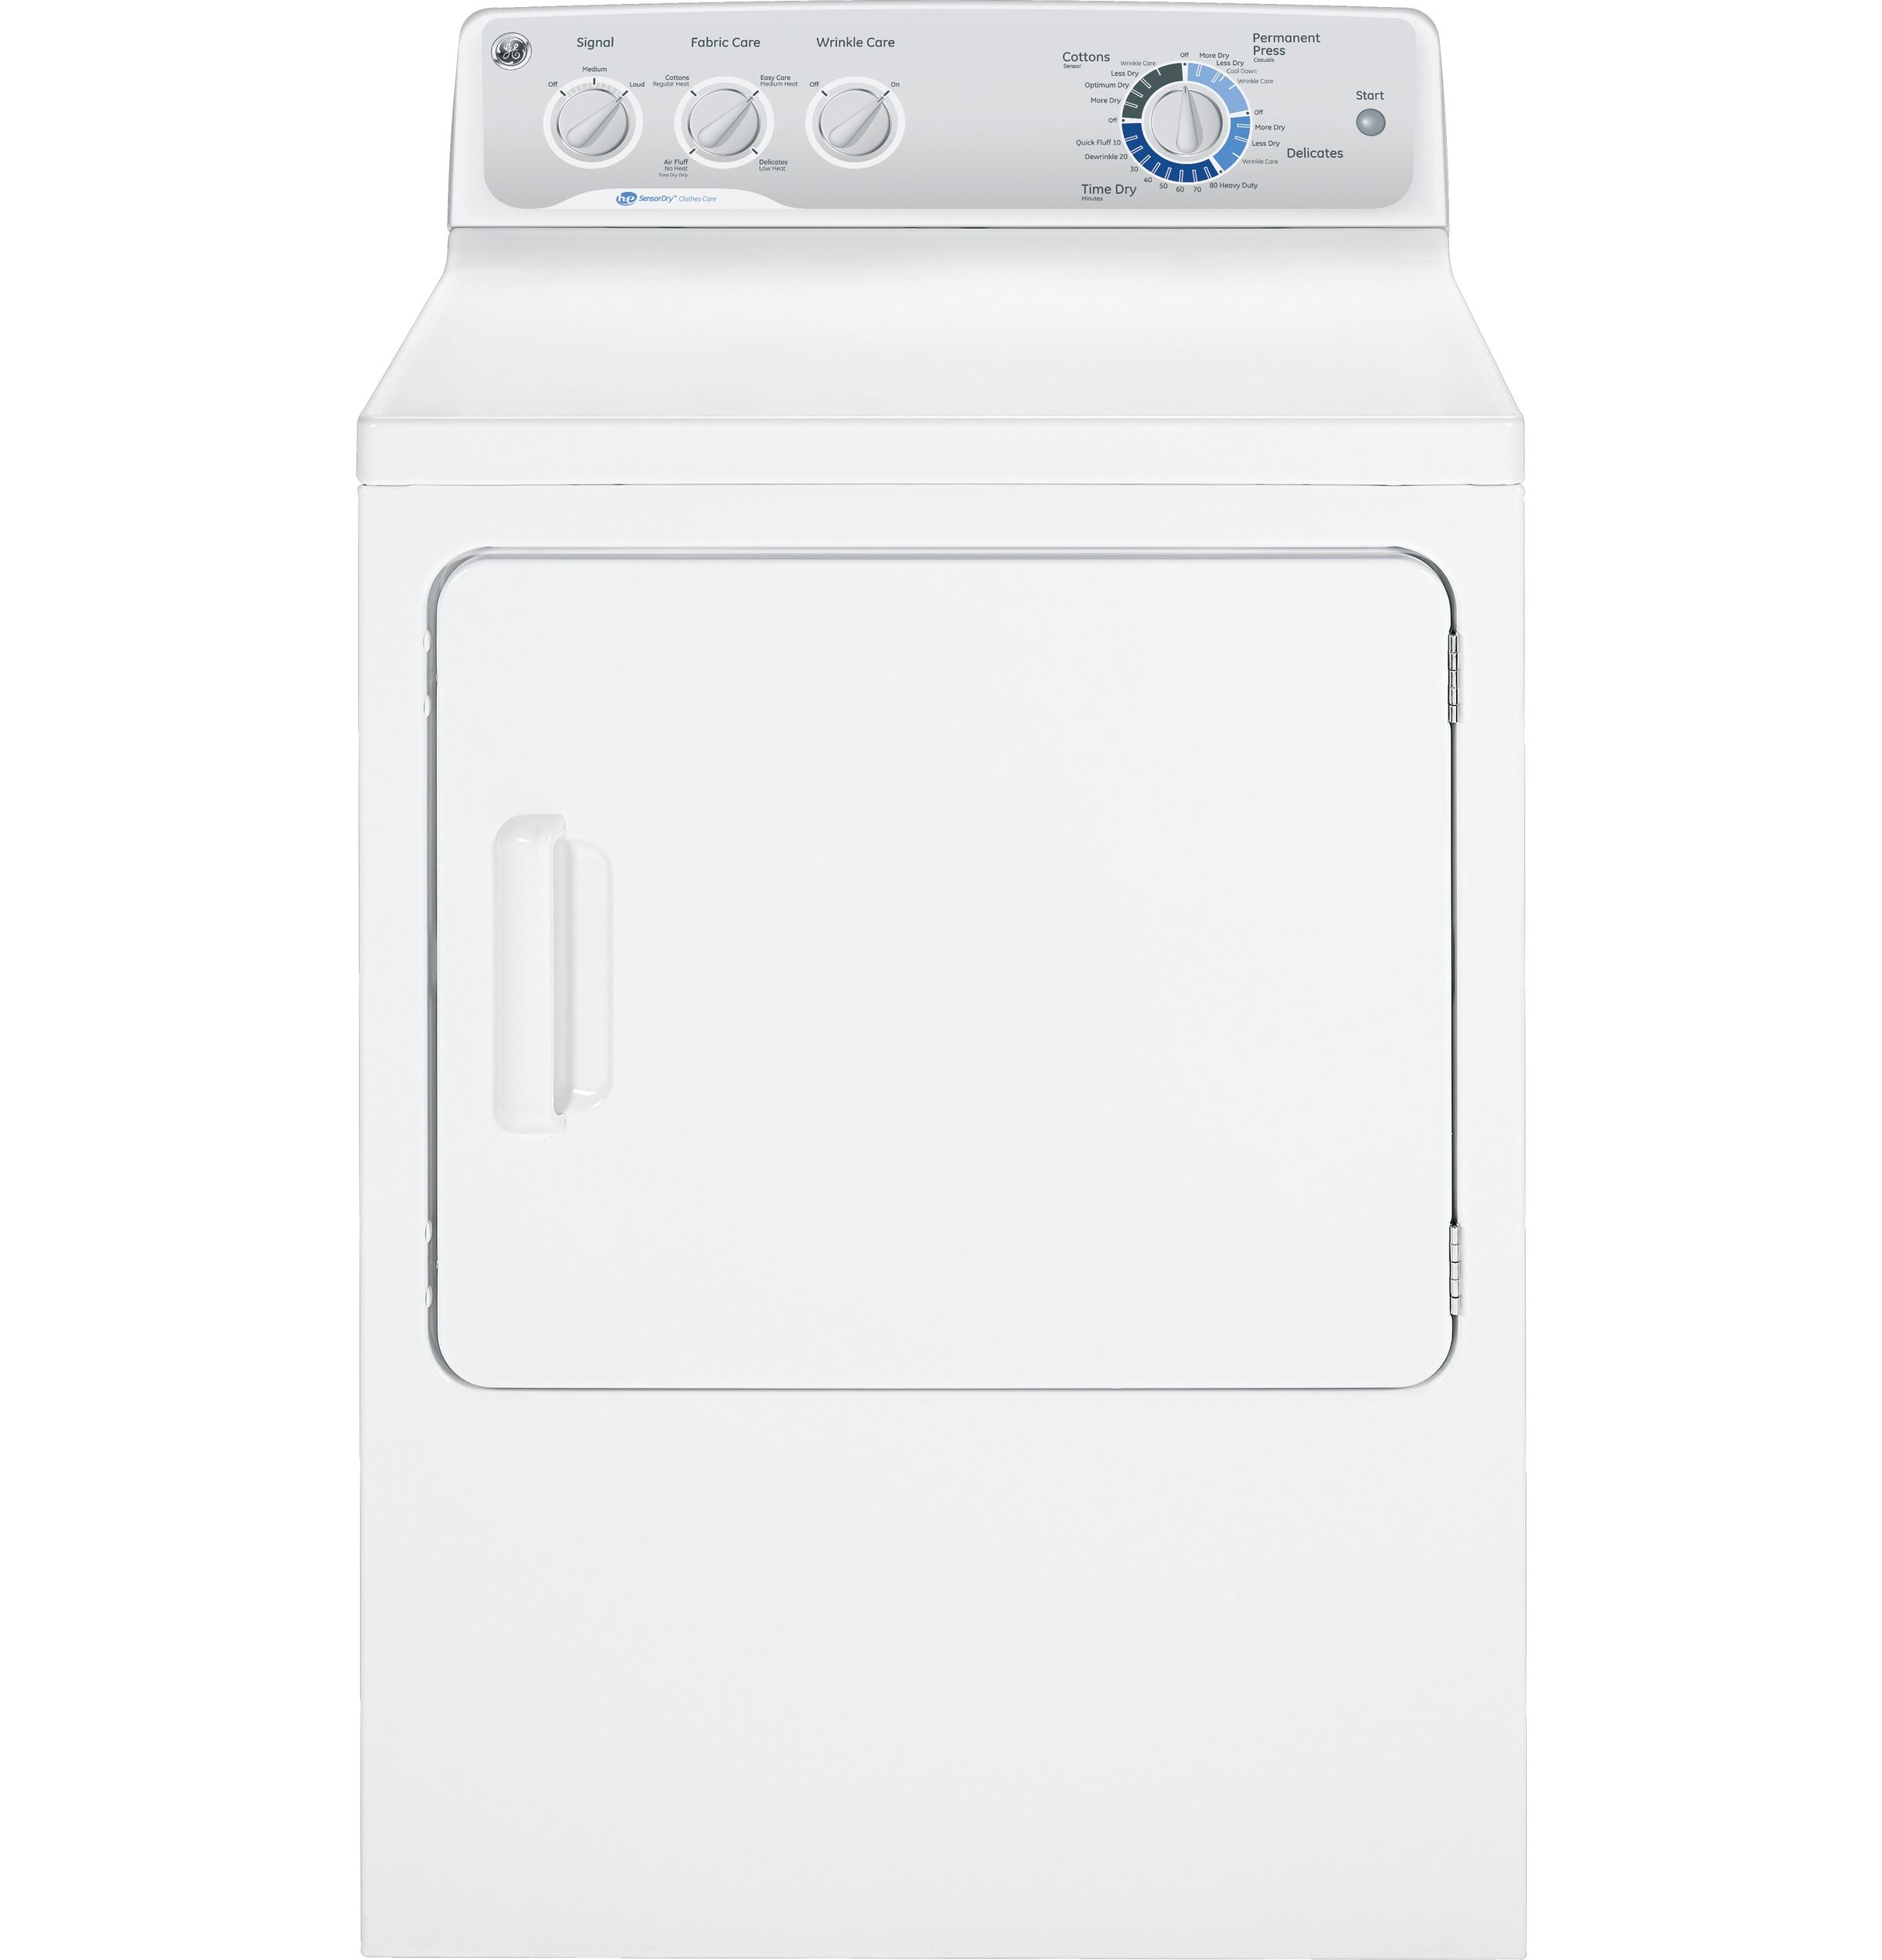 One of several appliances we are purchasing later this